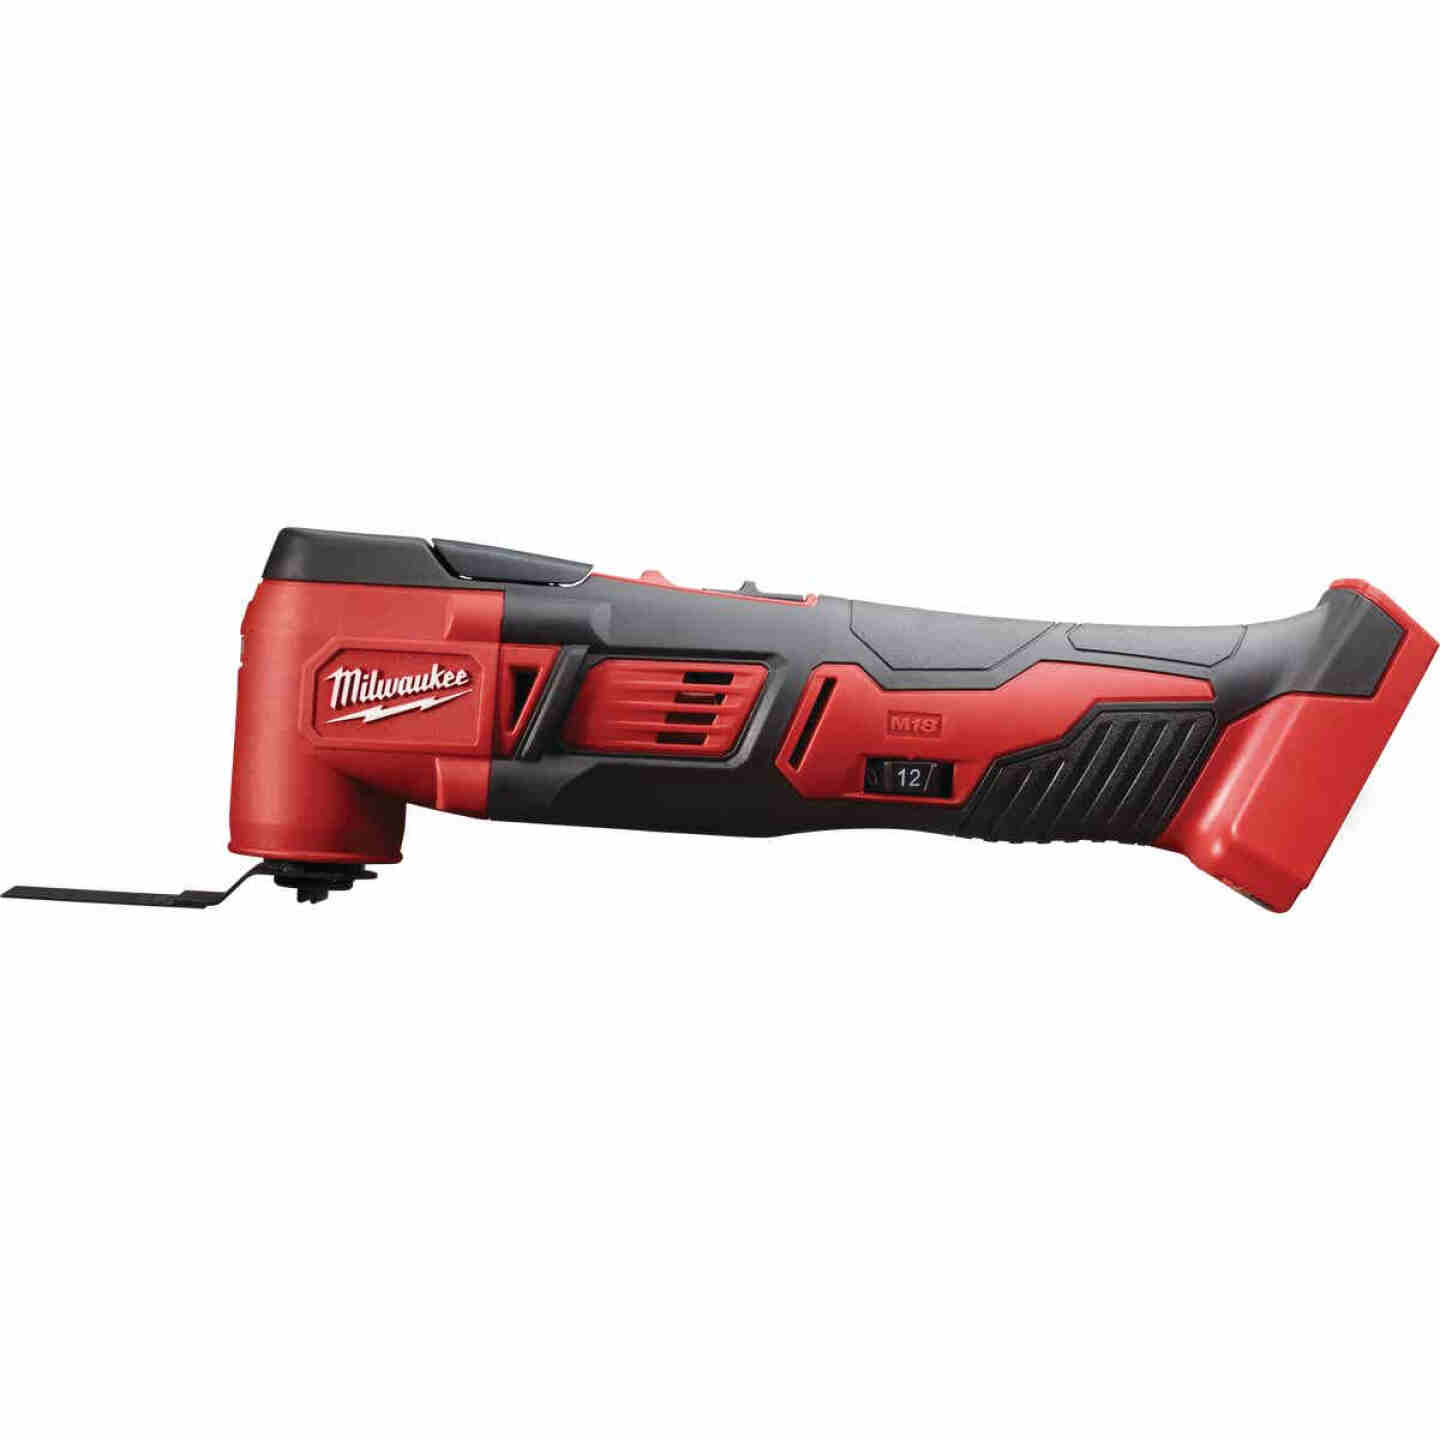 Milwaukee M18 18-Volt Lithium-Ion Cordless Oscillating Tool (Bare Tool) Image 1